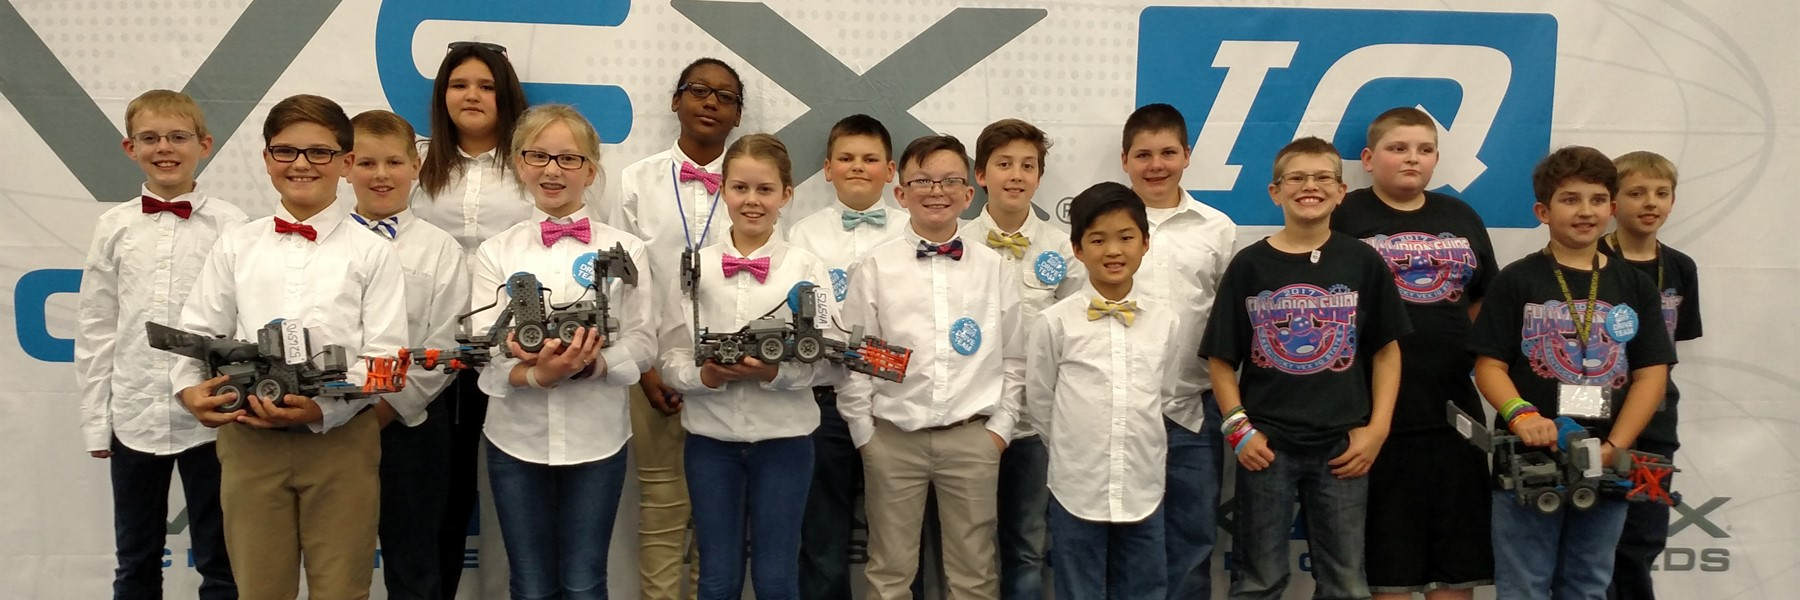 Teams from Northern and Stamping Ground compete at VEX Worlds.